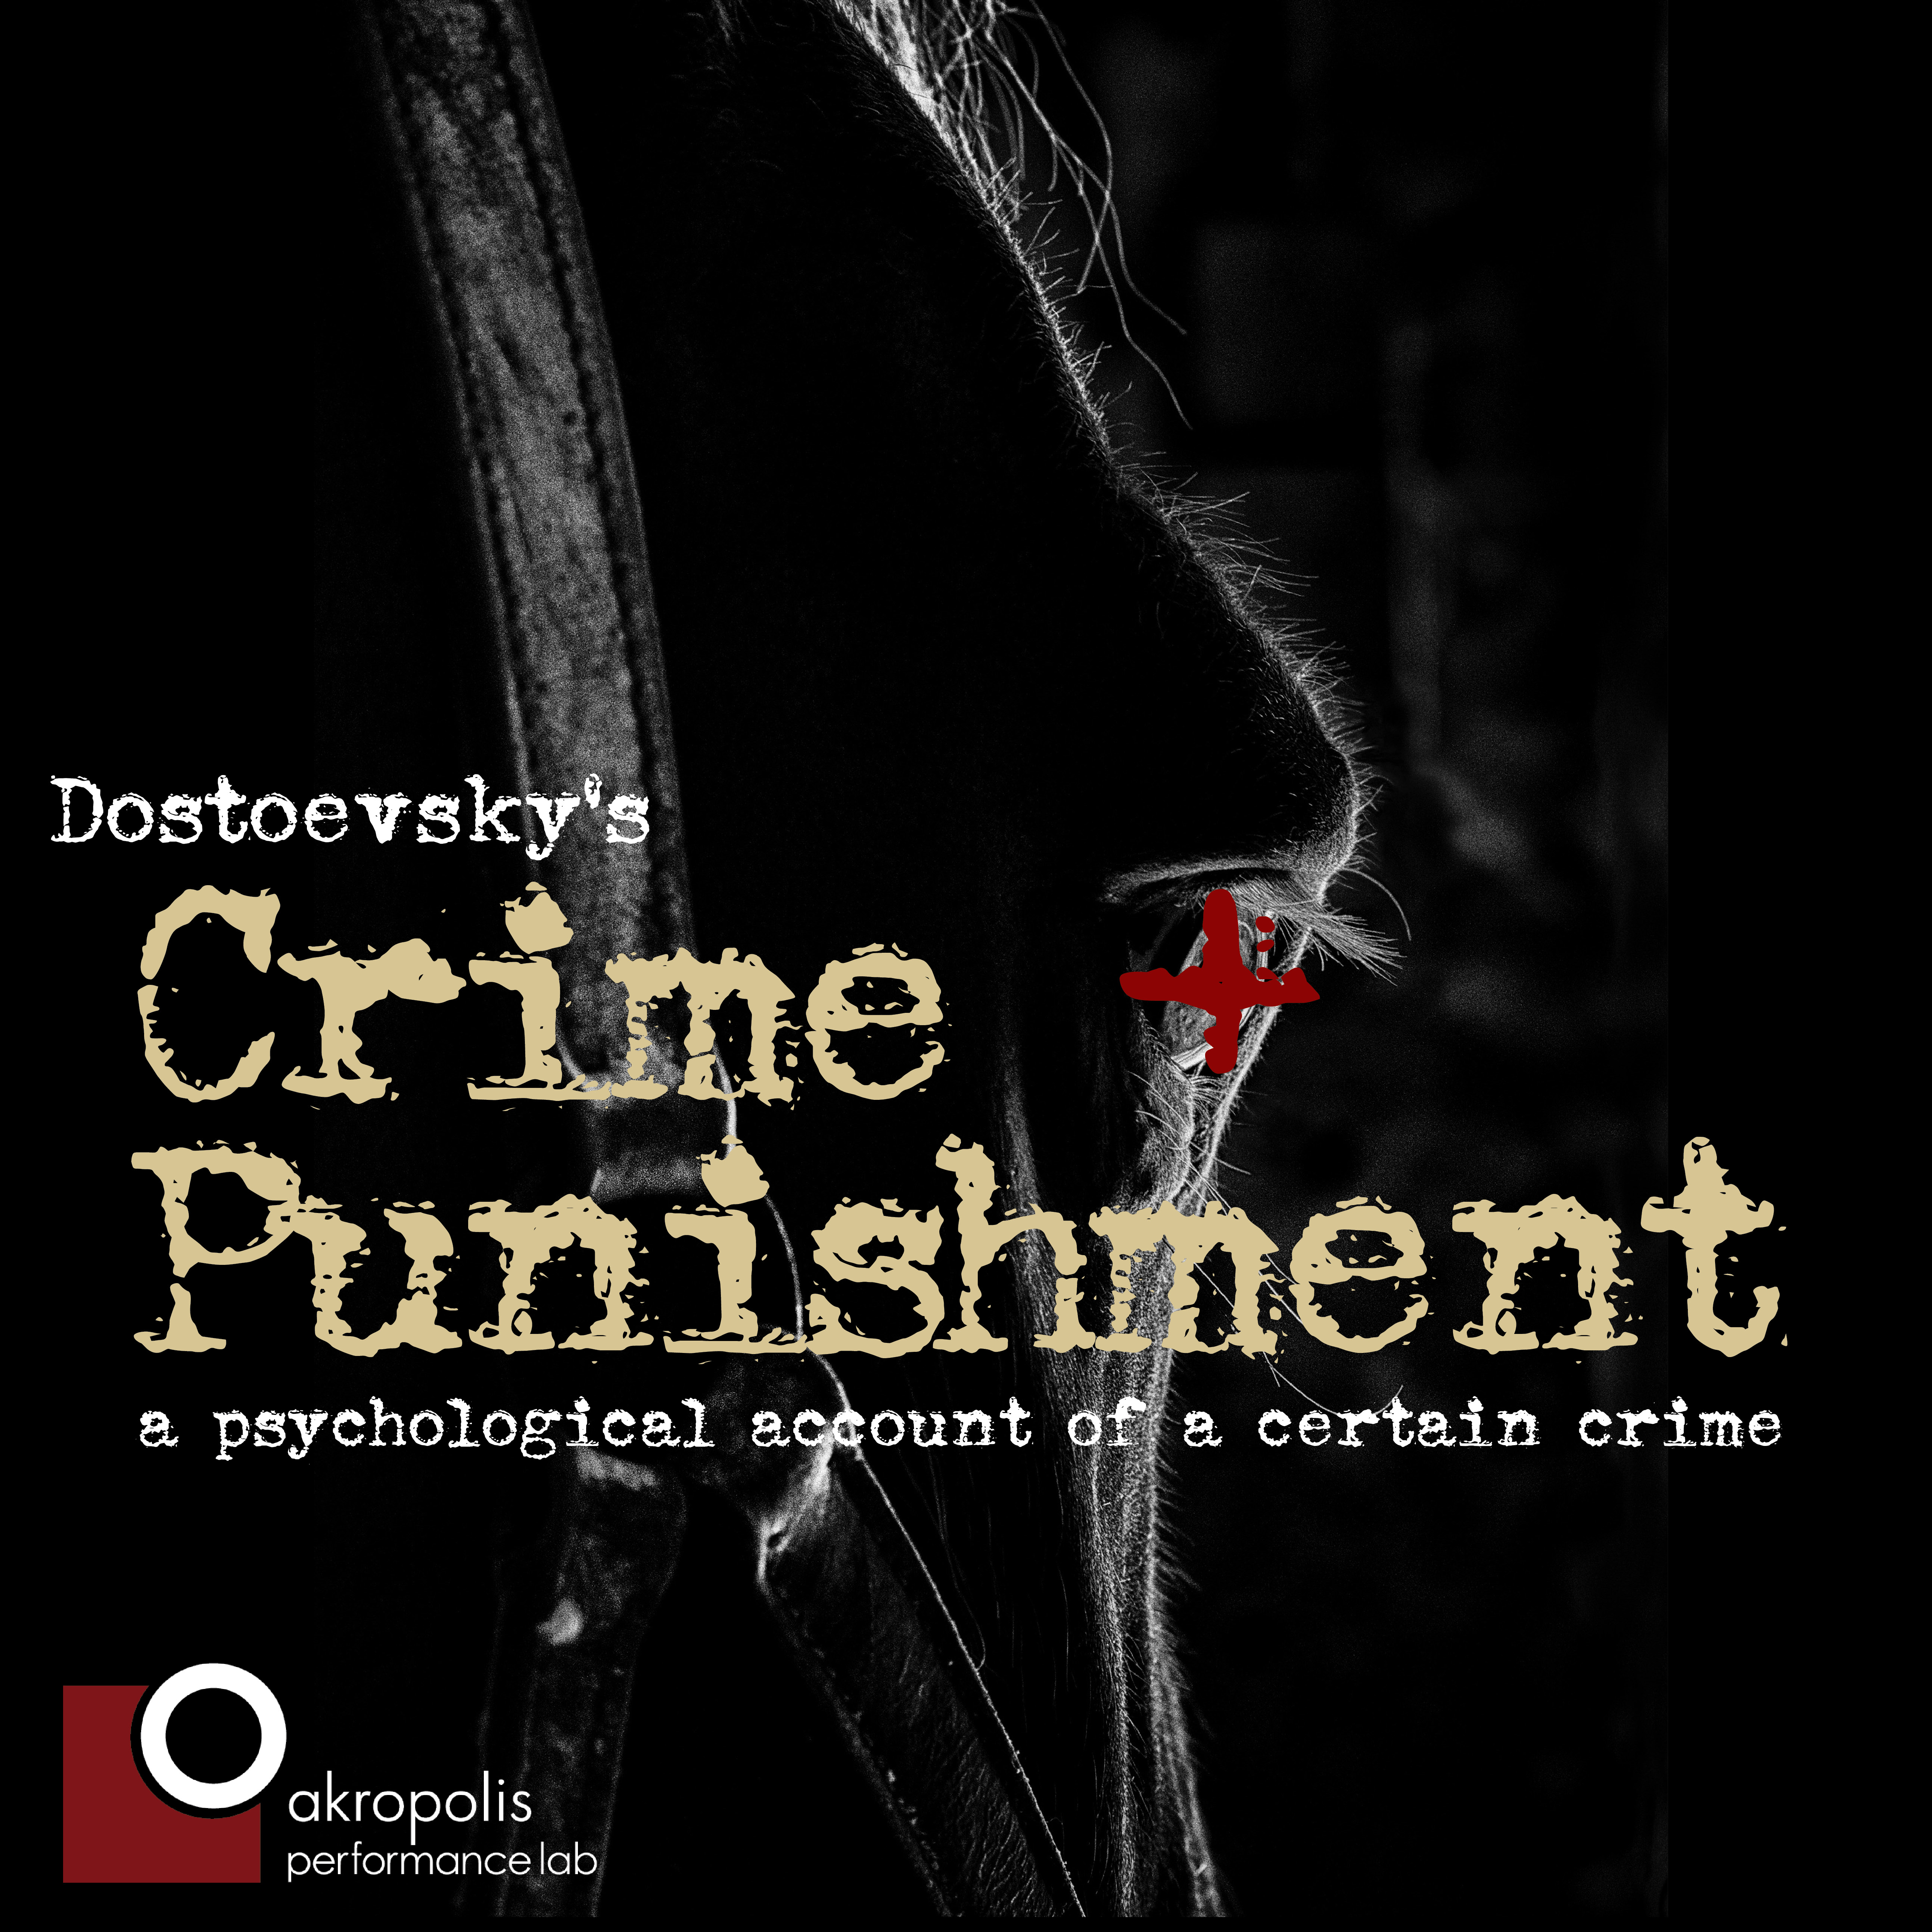 19th century theories in dostoevskys crime and punishment essay